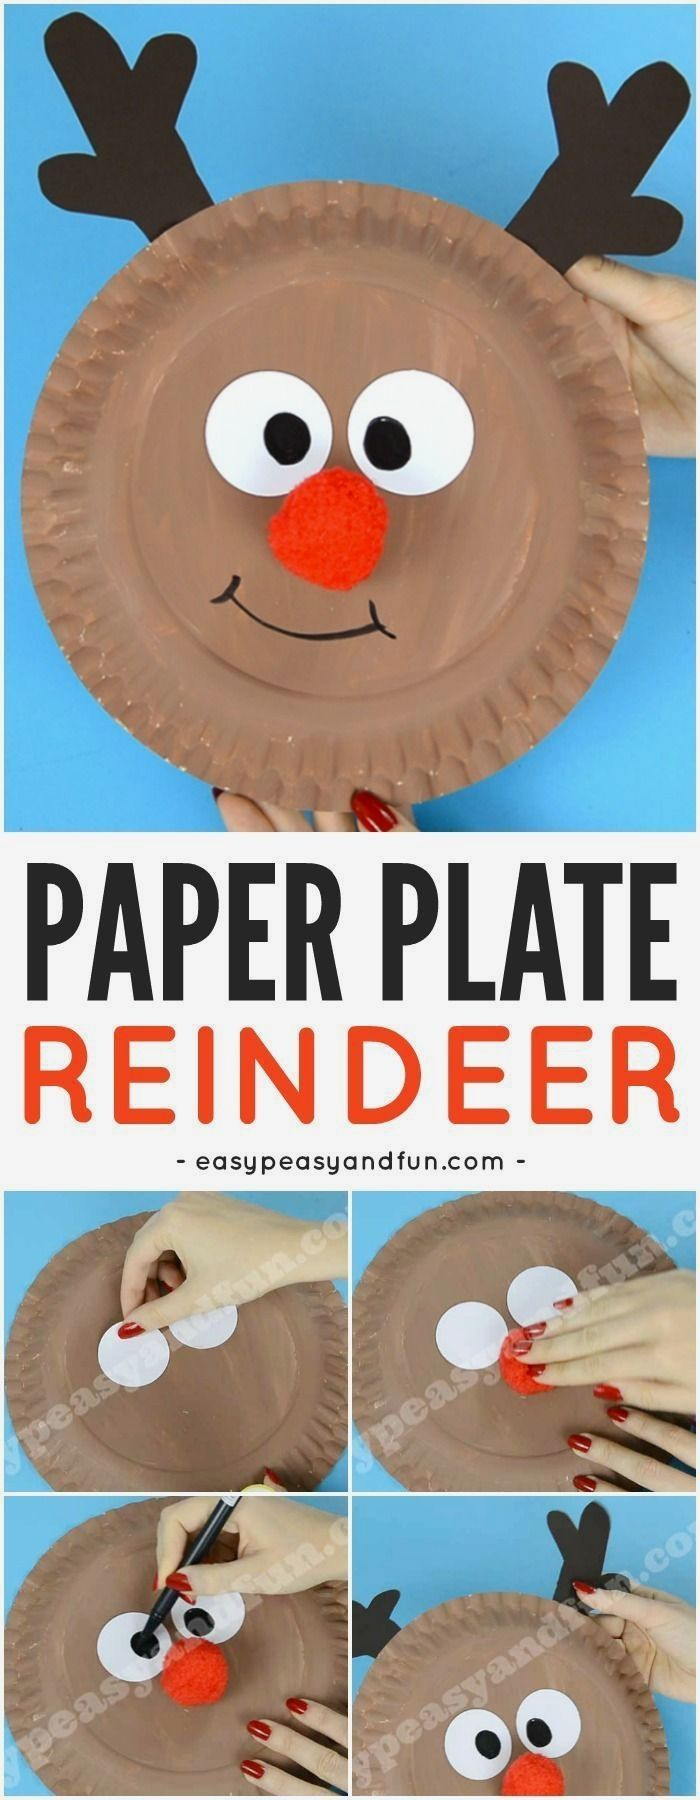 Reindeer Paper Plate Craft with a Cute Red Nose #holidaycraftsforkidstomake